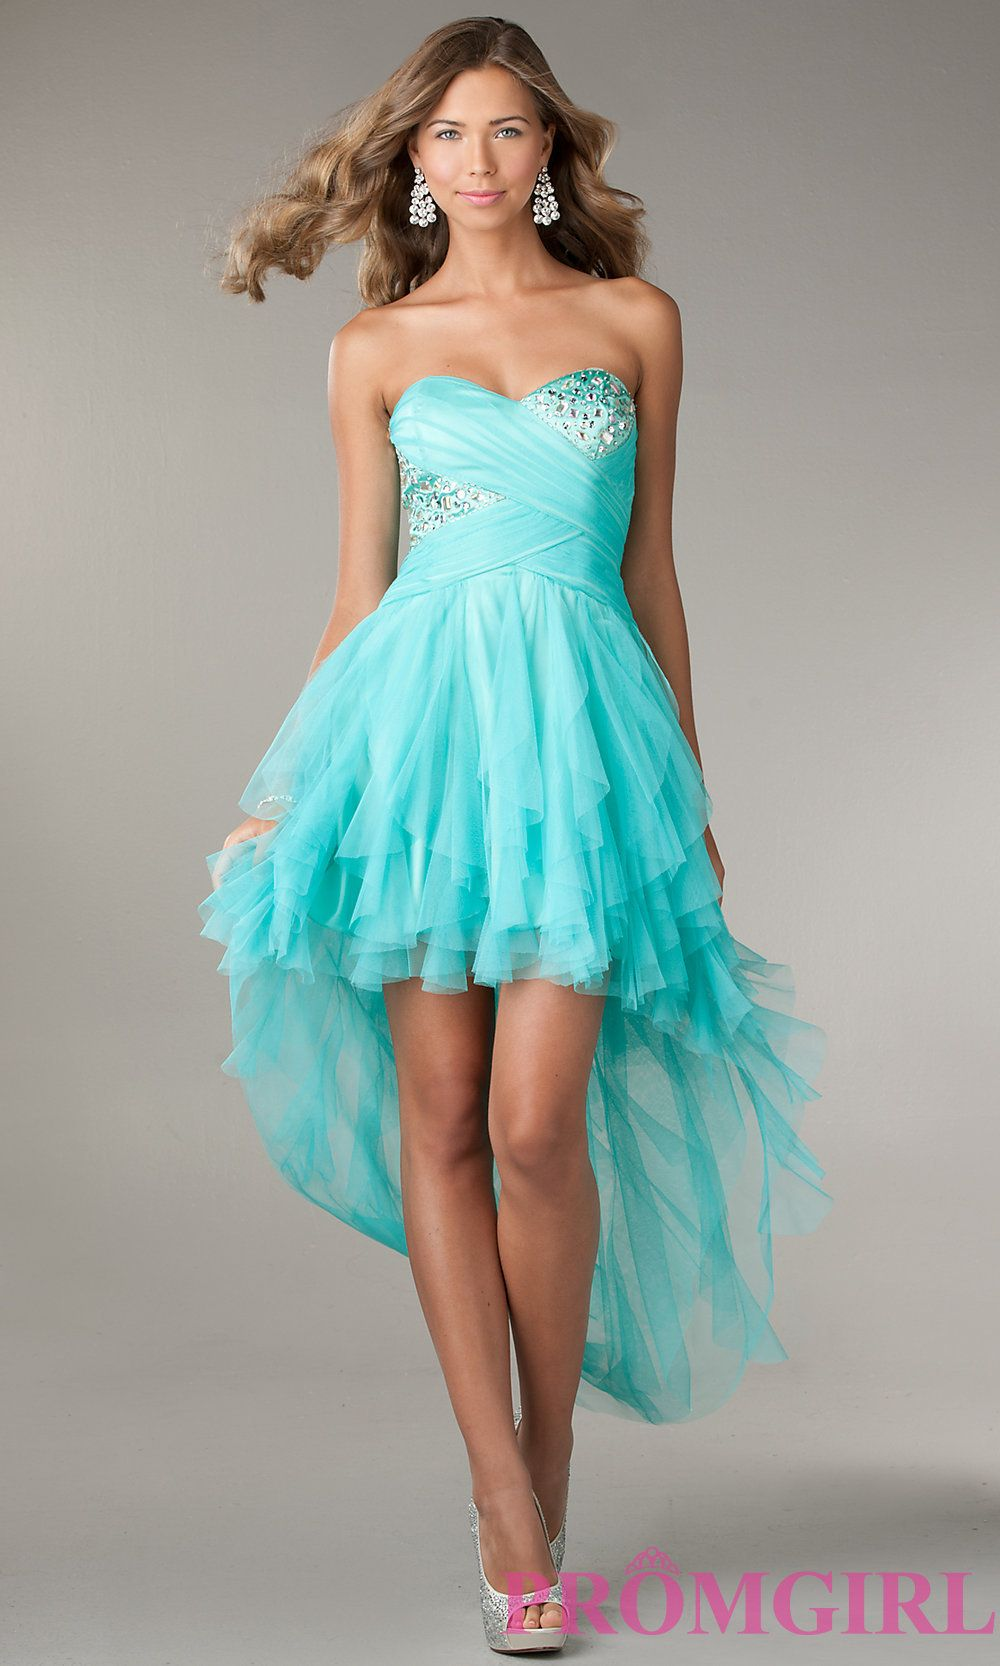 Ruffled High Low Strapless Dress by LA Glo $149.00 | FAVES ...